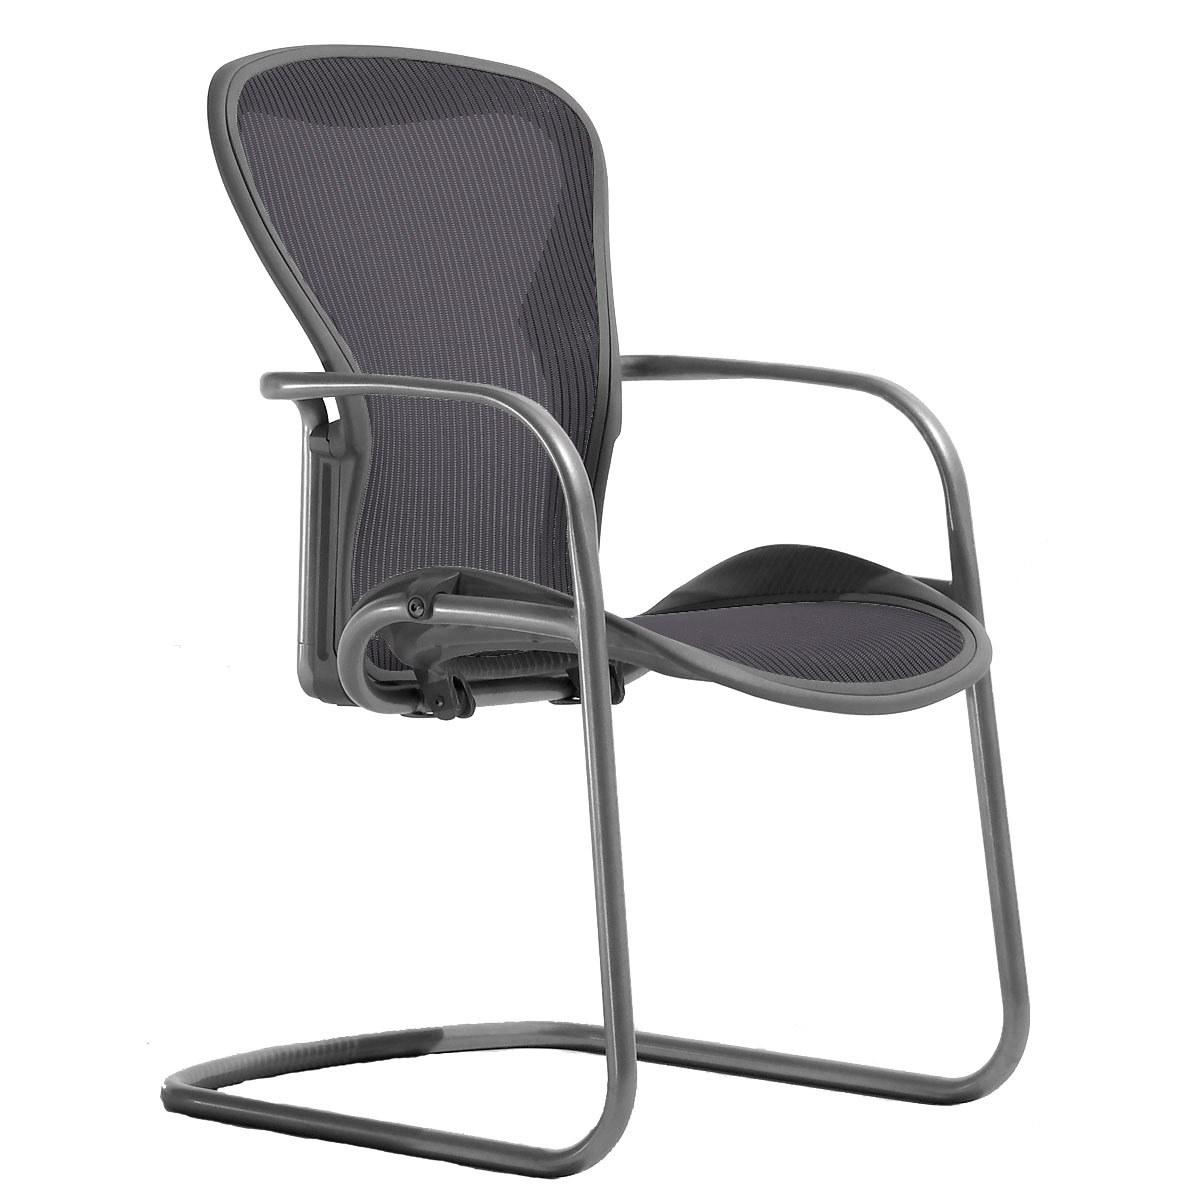 Marvelous Aeron Side Chair By Herman Miller Open Box Ocoug Best Dining Table And Chair Ideas Images Ocougorg